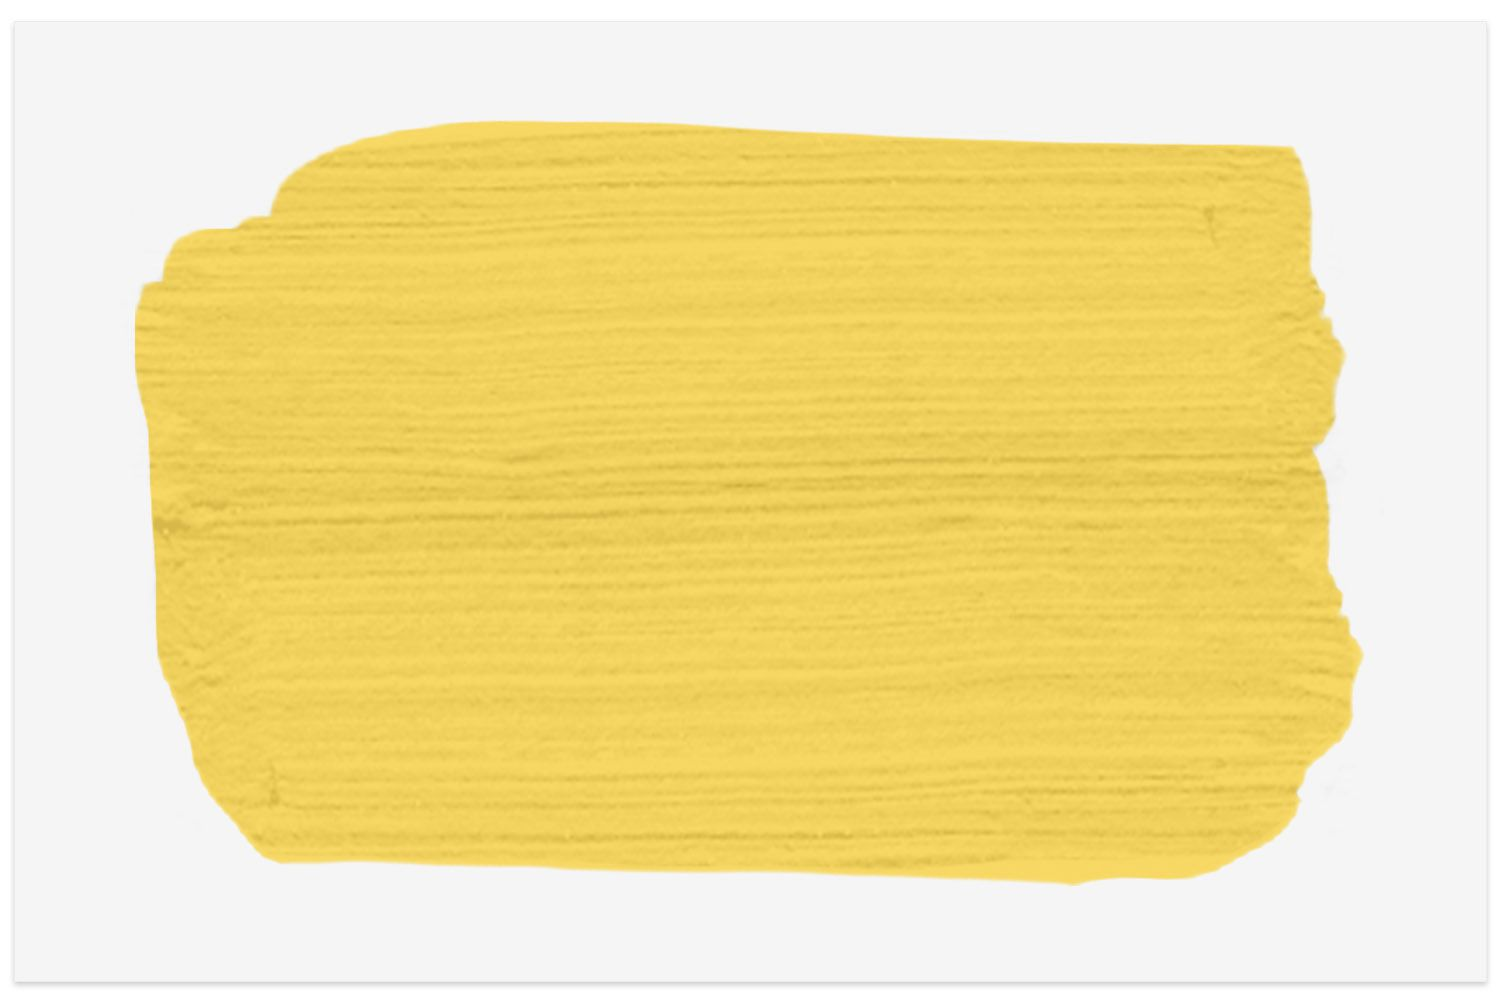 Forsythia Blossom paint swatch from PPG Paints